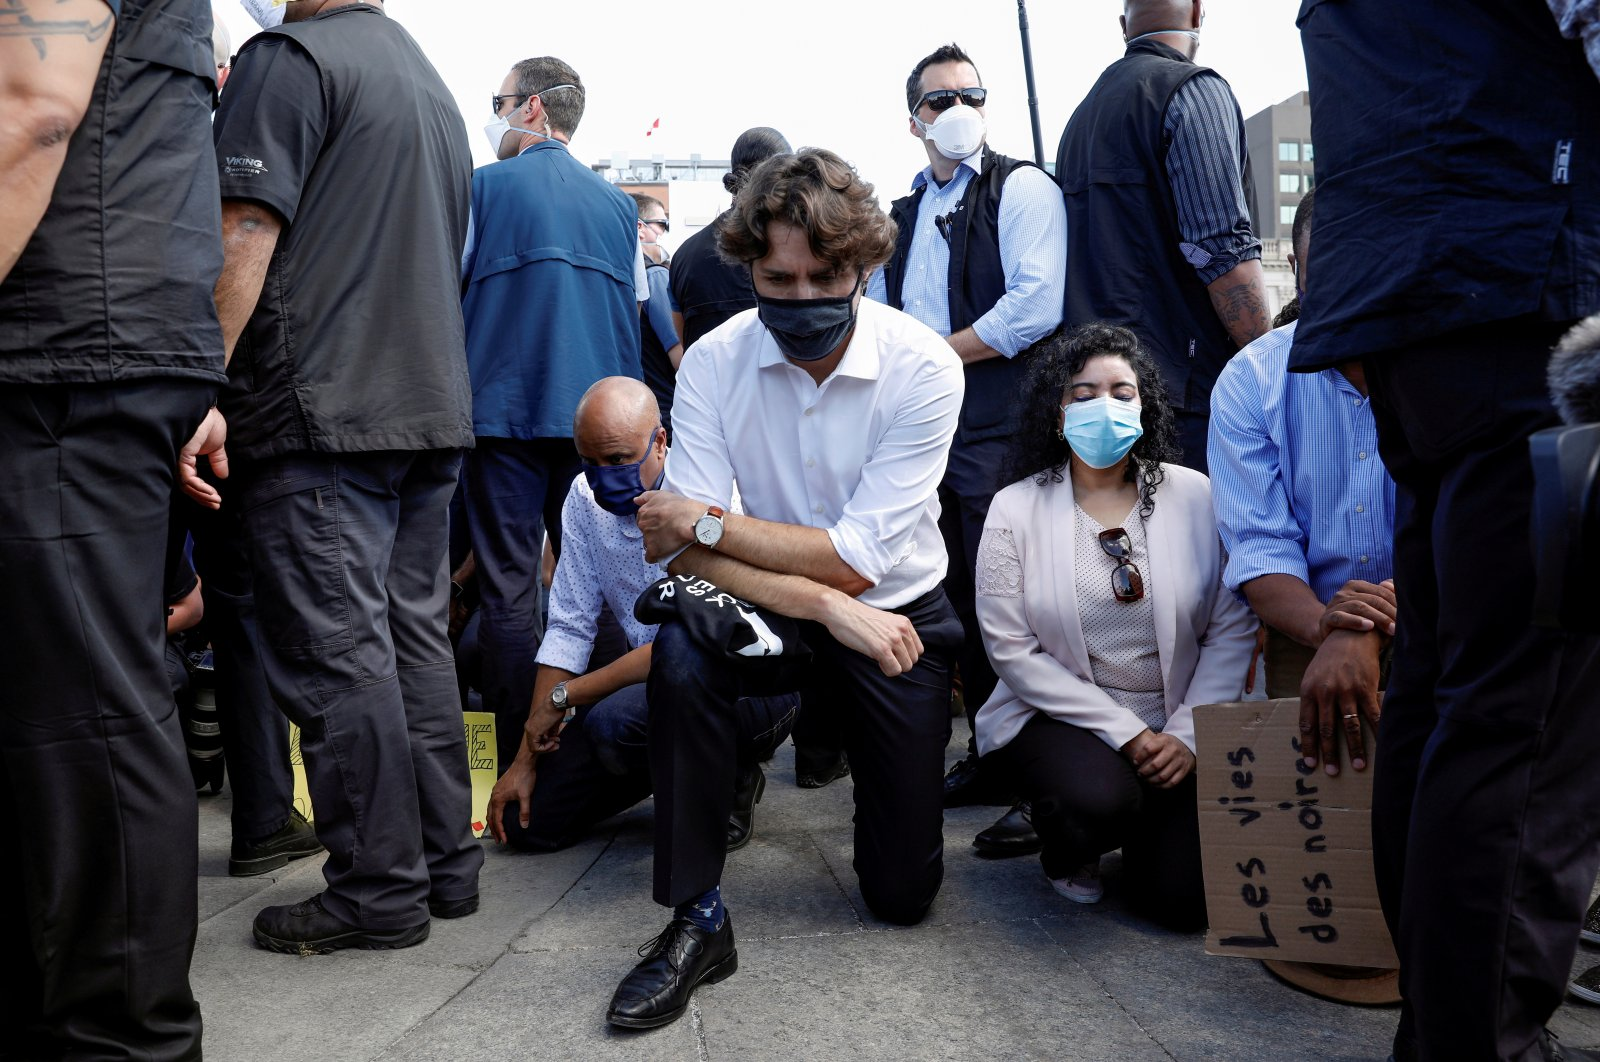 Canada's Prime Minister Justin Trudeau wears a mask as he takes a knee during a rally against the death in Minneapolis police custody of George Floyd, on Parliament Hill, in Ottawa, Ontario, Canada June 5, 2020. (Reuters Photo)